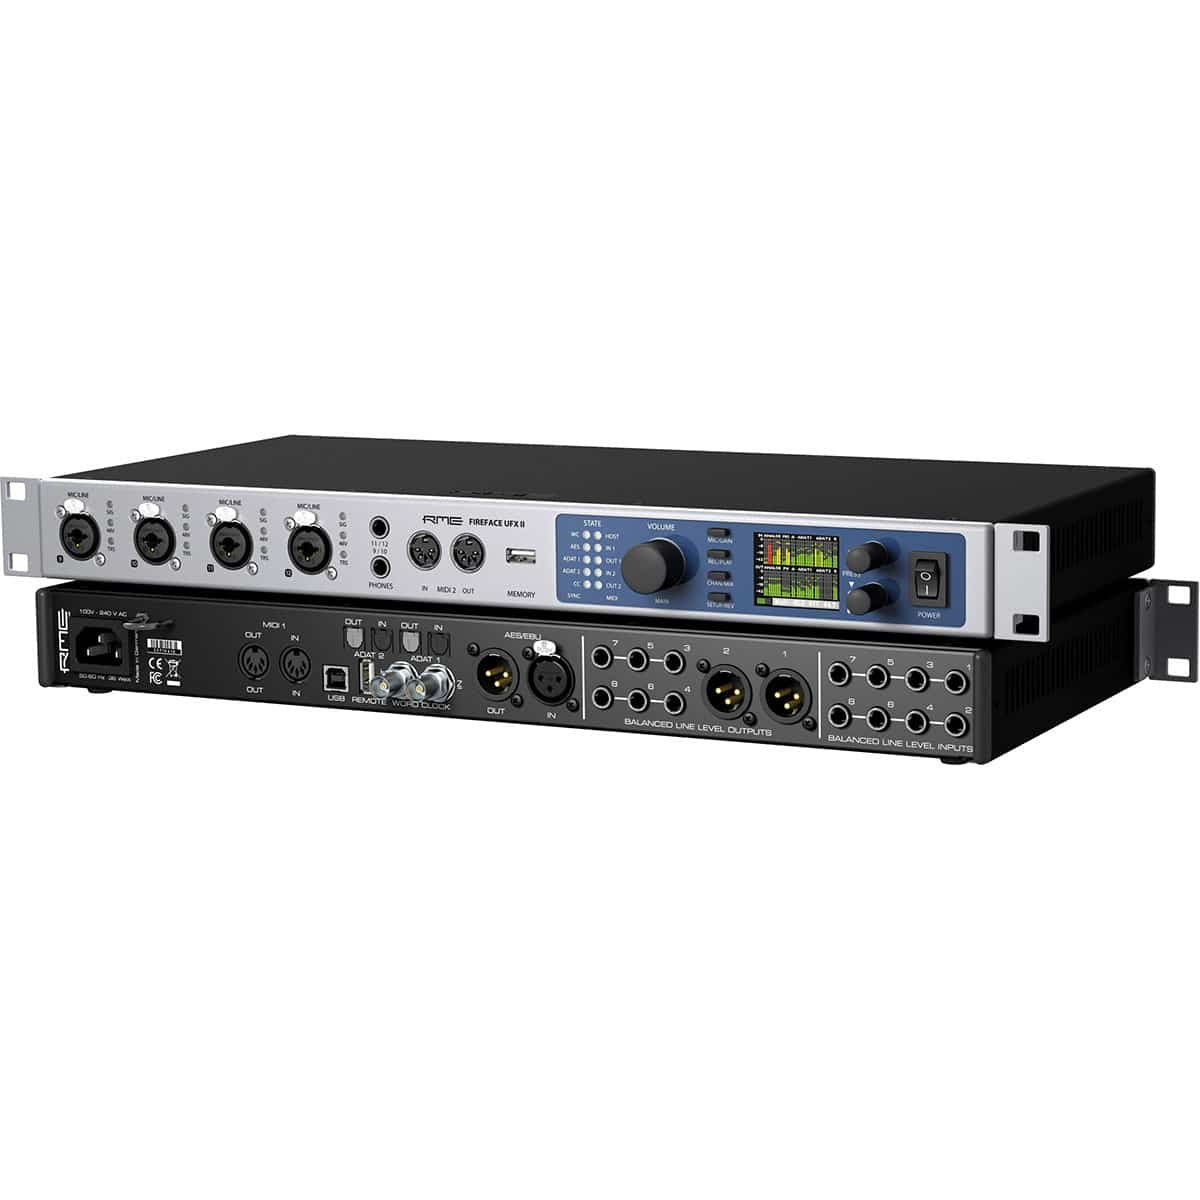 RME Fireface Ufx ii 02 Pro Audio, Audio Digitale Convertitori e Schede Audio, Schede Audio per PC e MAC